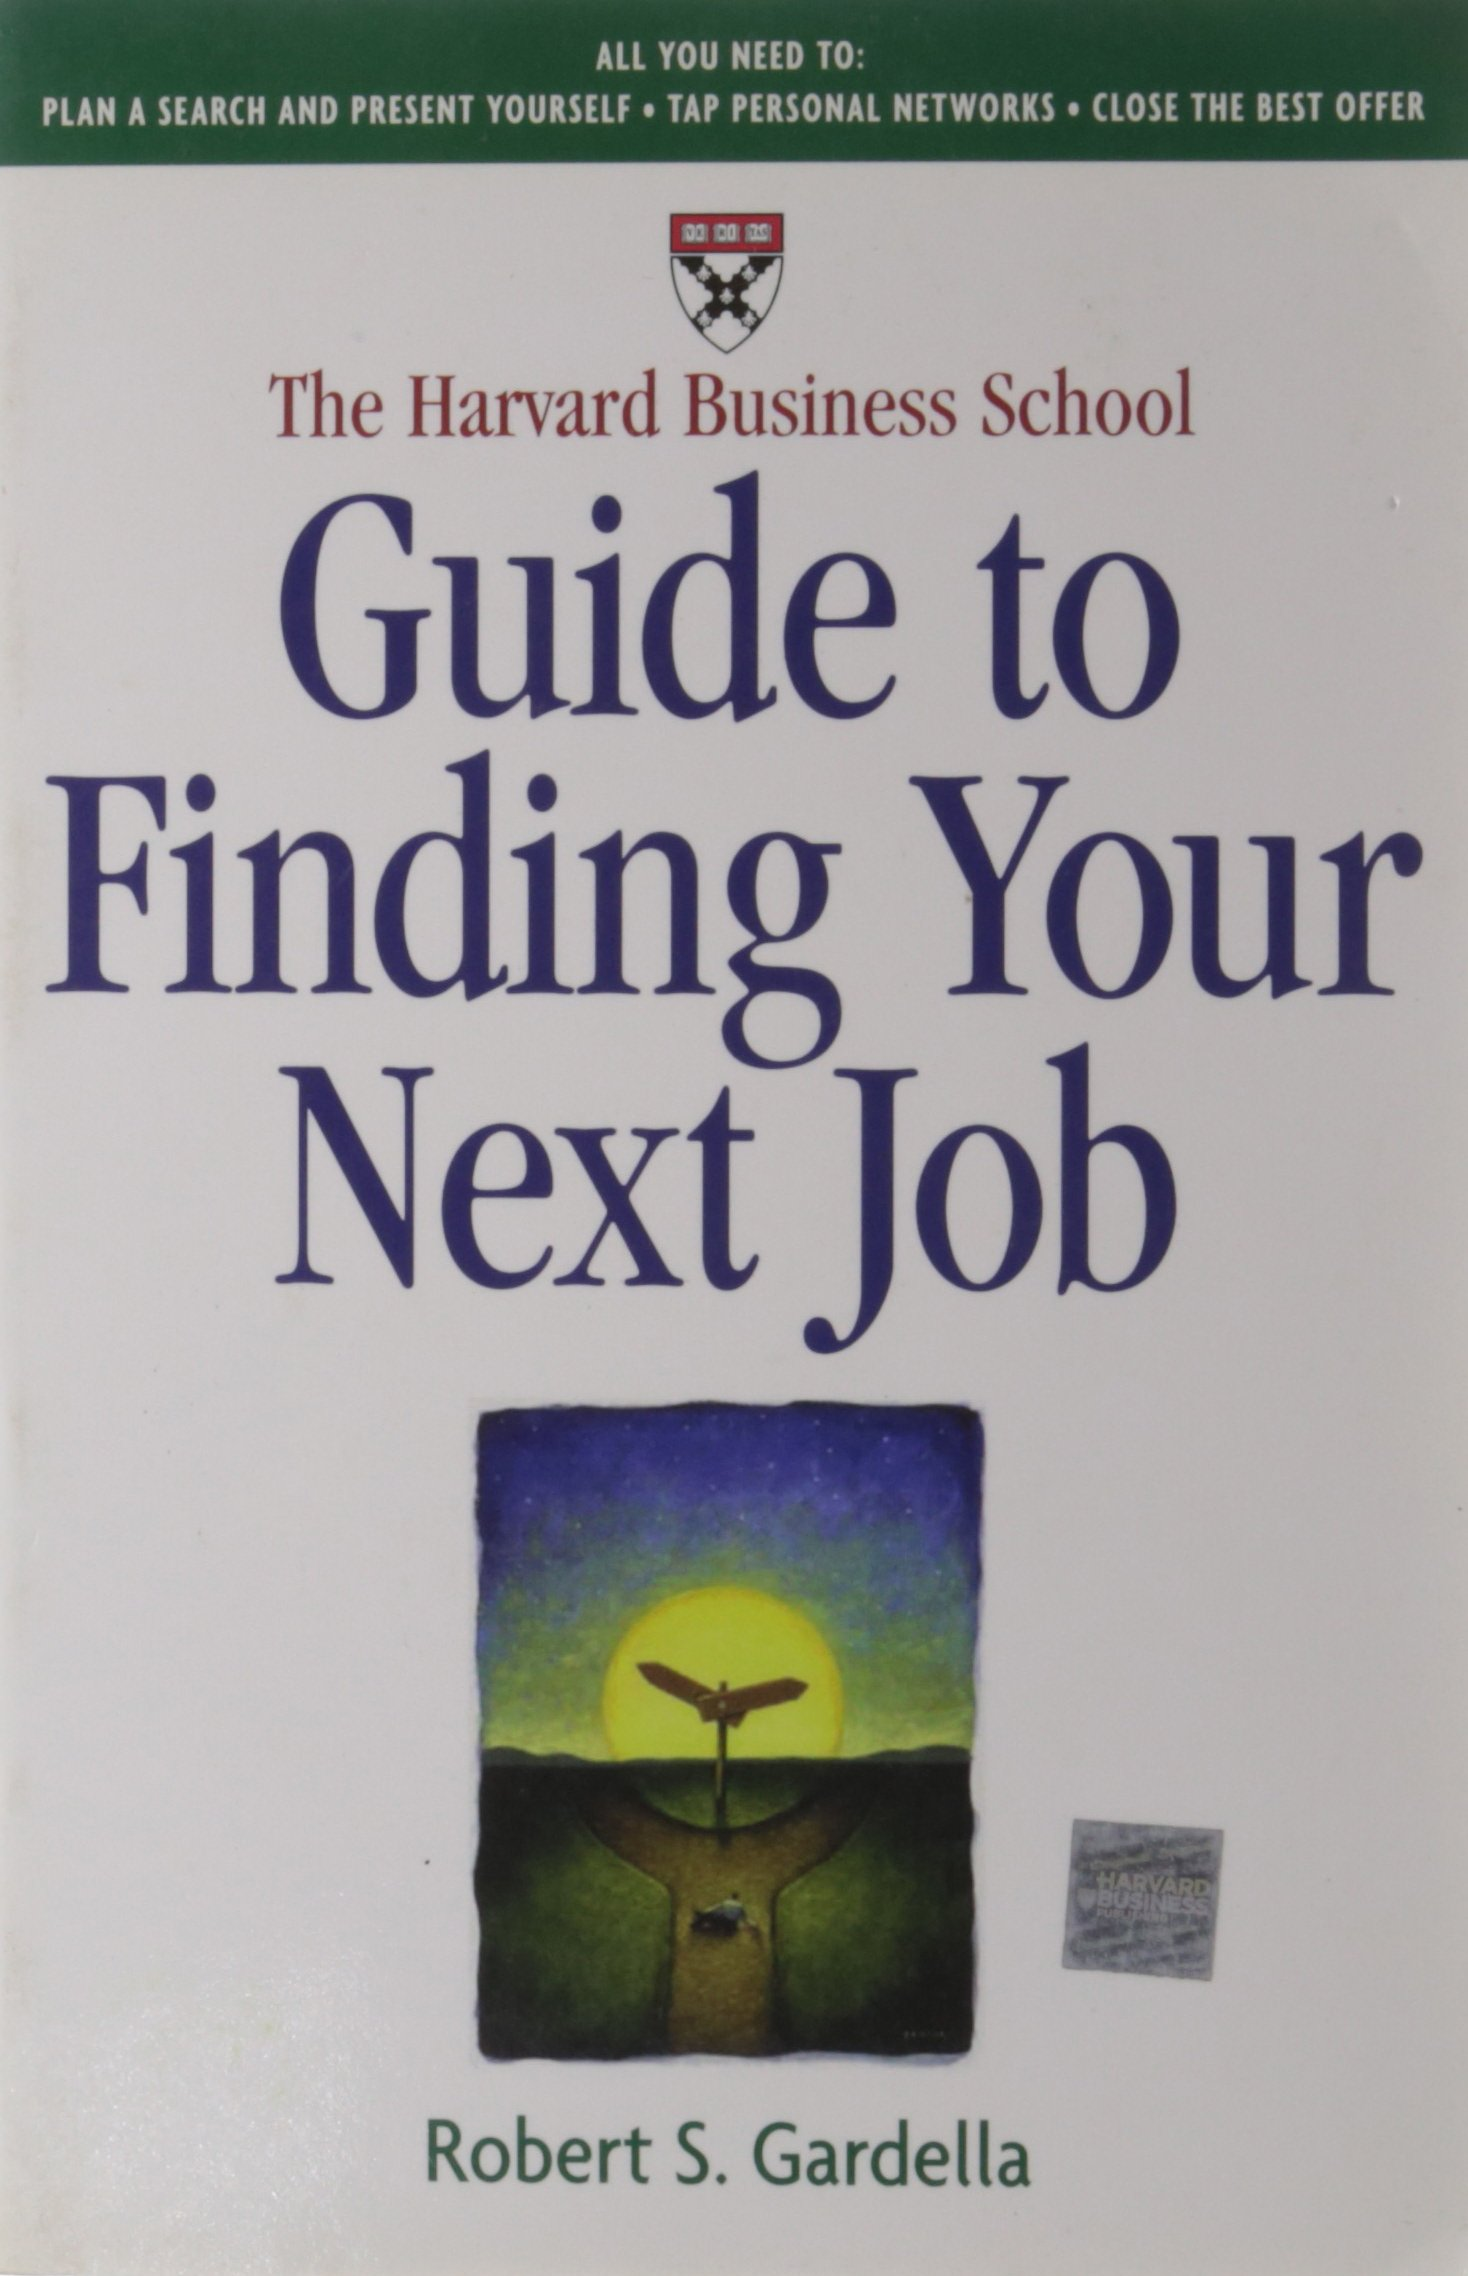 the harvard business school guide to finding your next job robert